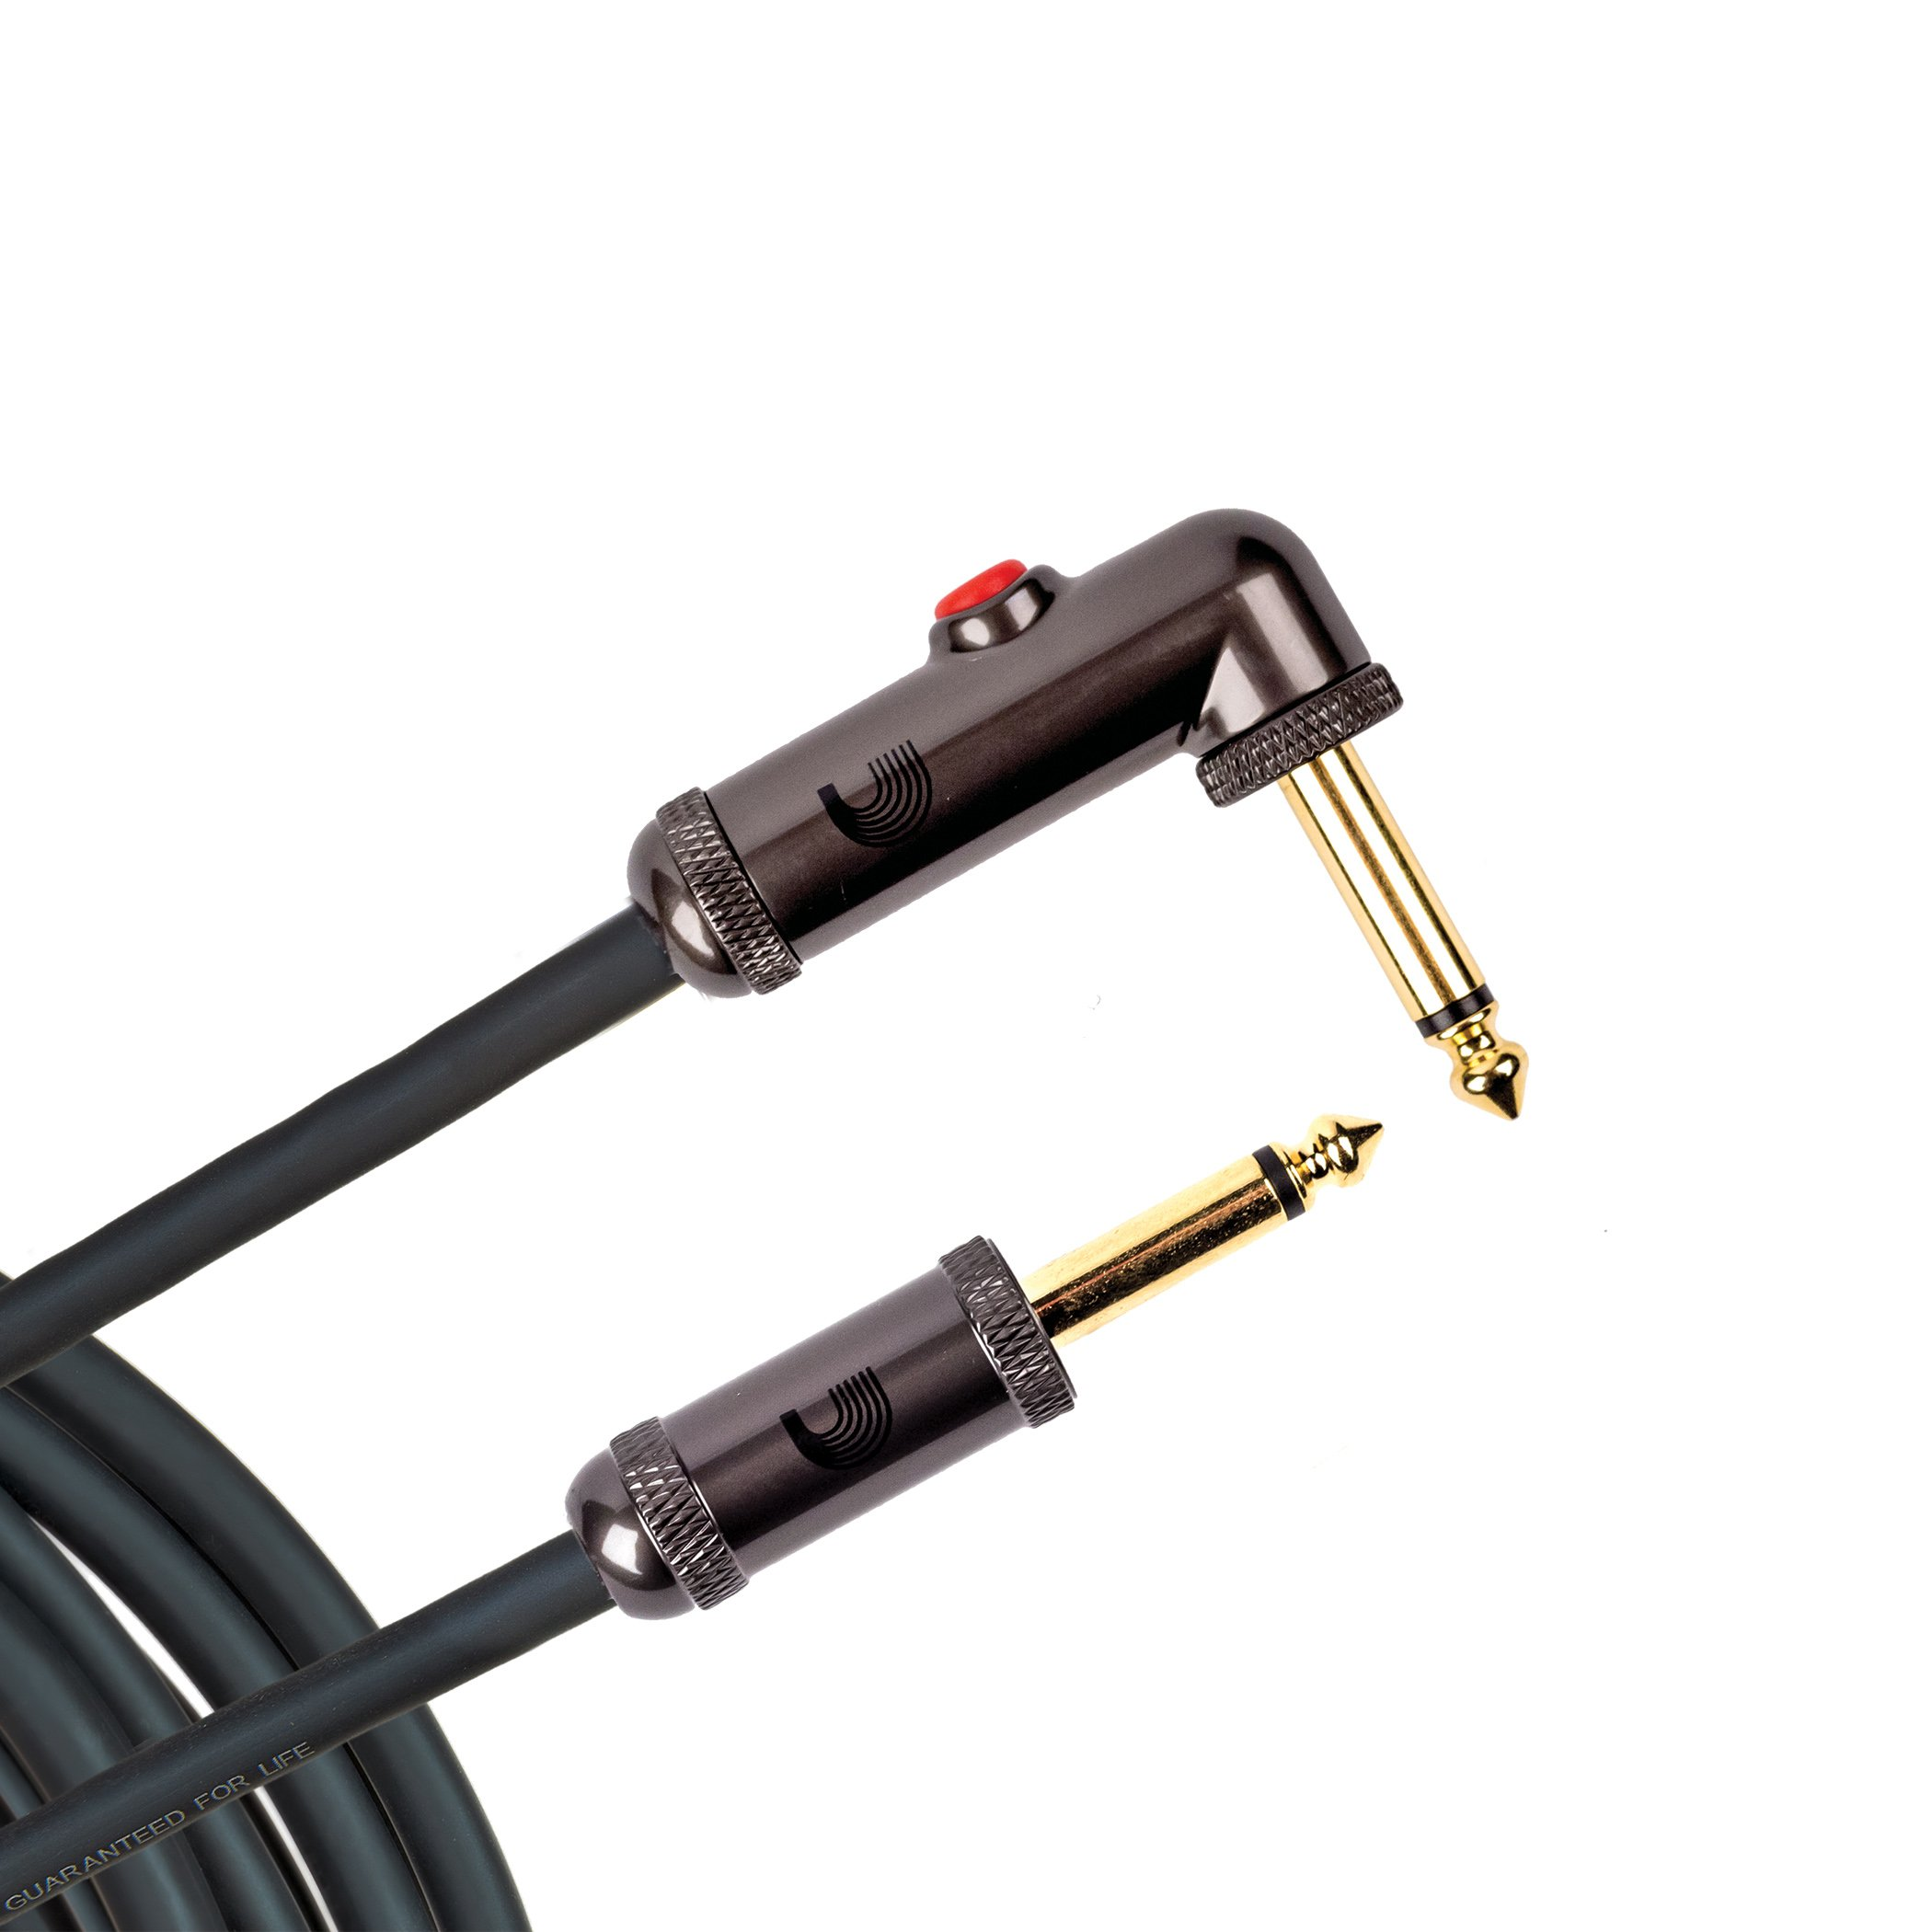 D'Addario 10' Circuit Breaker Instrument Cable with Latching Cut-Off Switch, Right Angle Plug by D'Addario